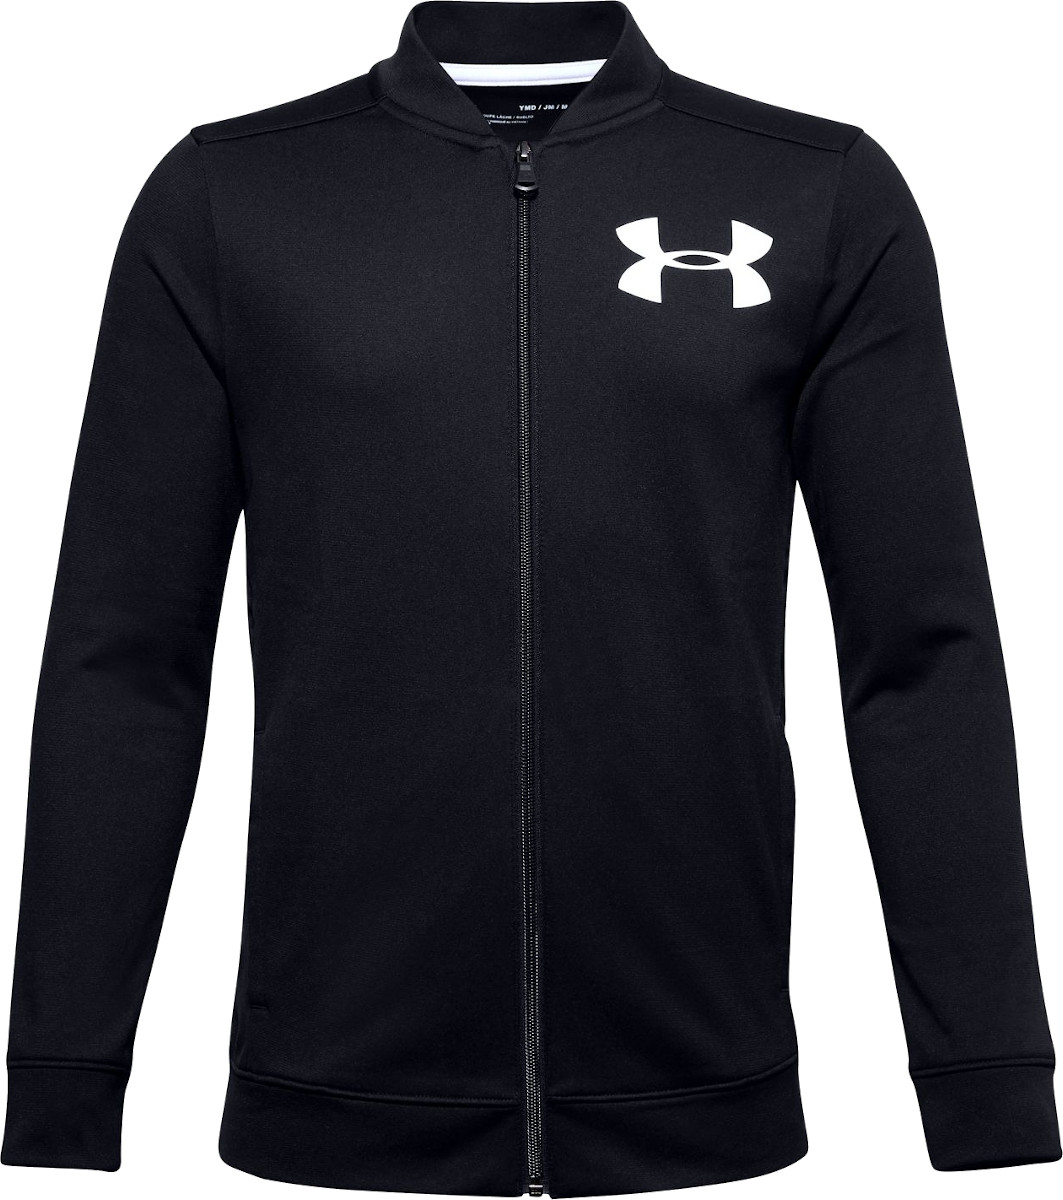 Under Armour UA Pennant Jacket 2.0 Dzseki